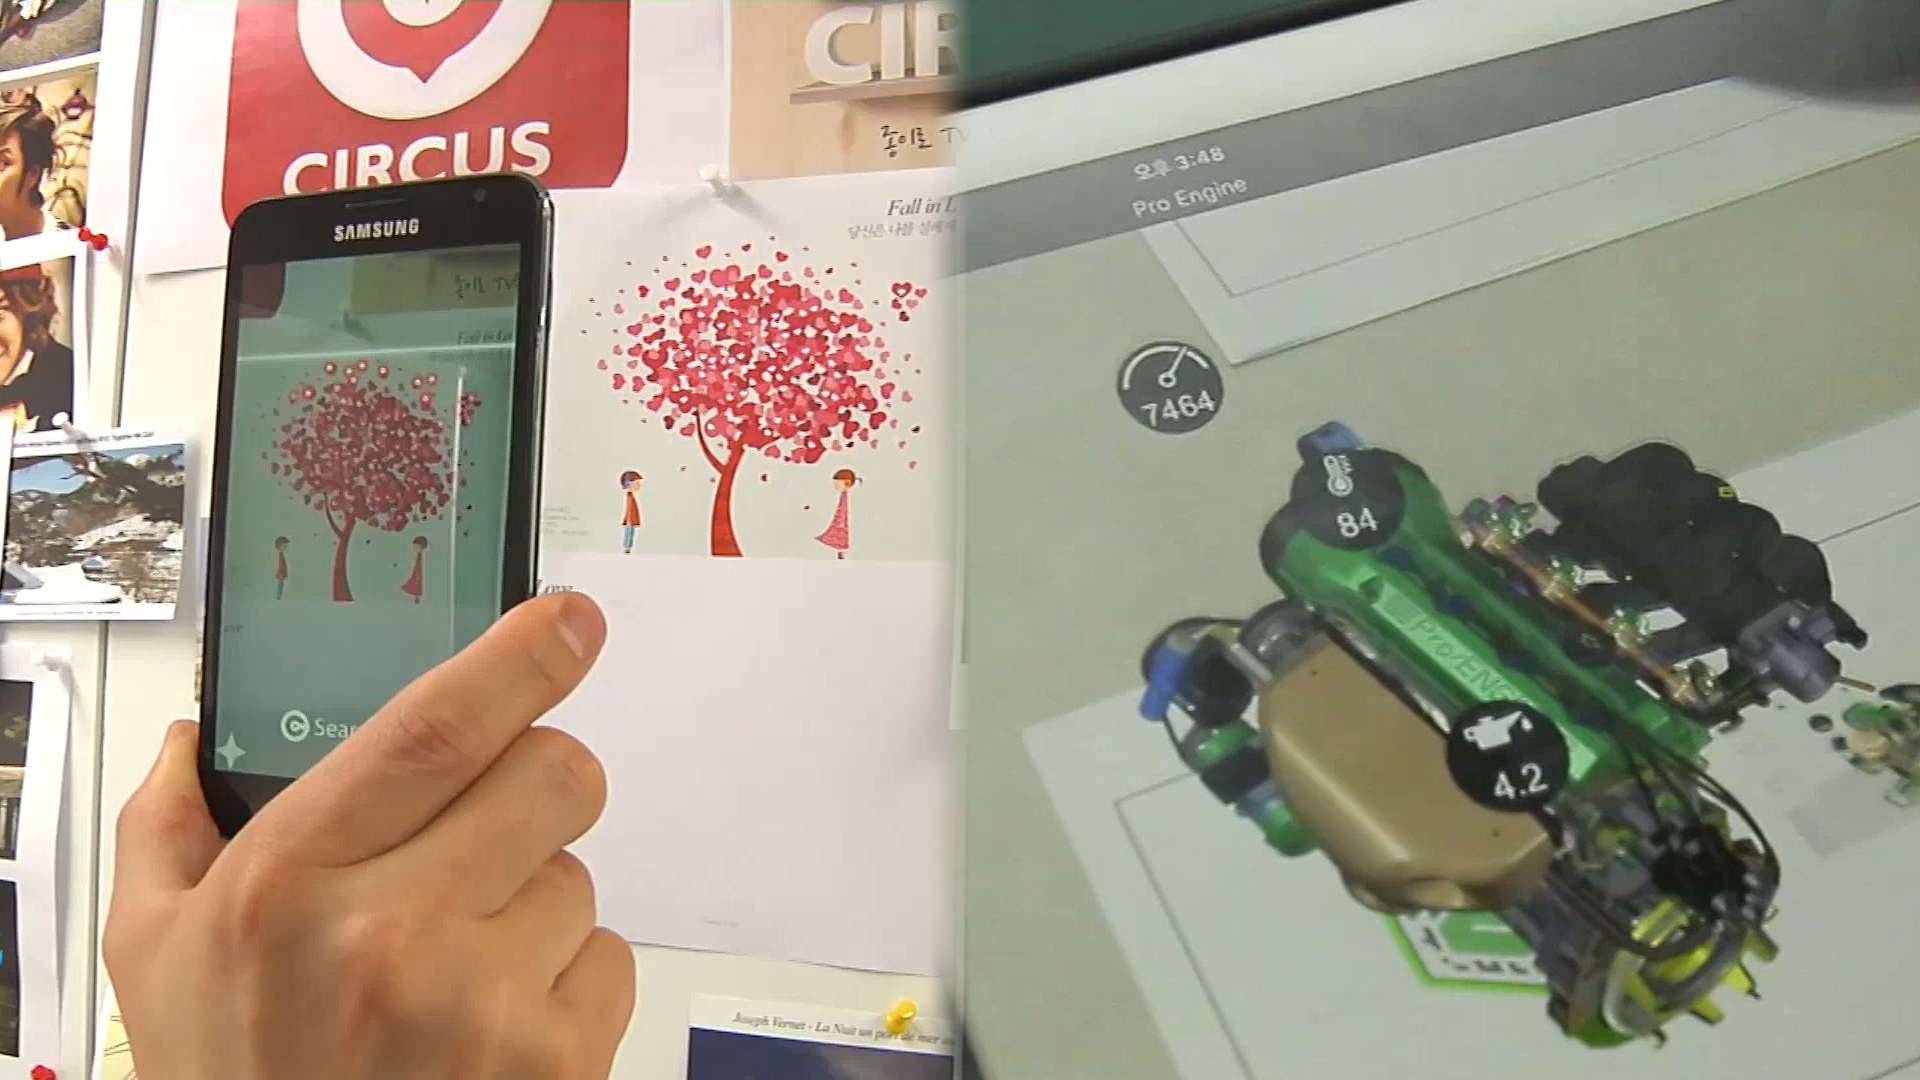 [InsideBiz] Rapid growth of augmented reality market